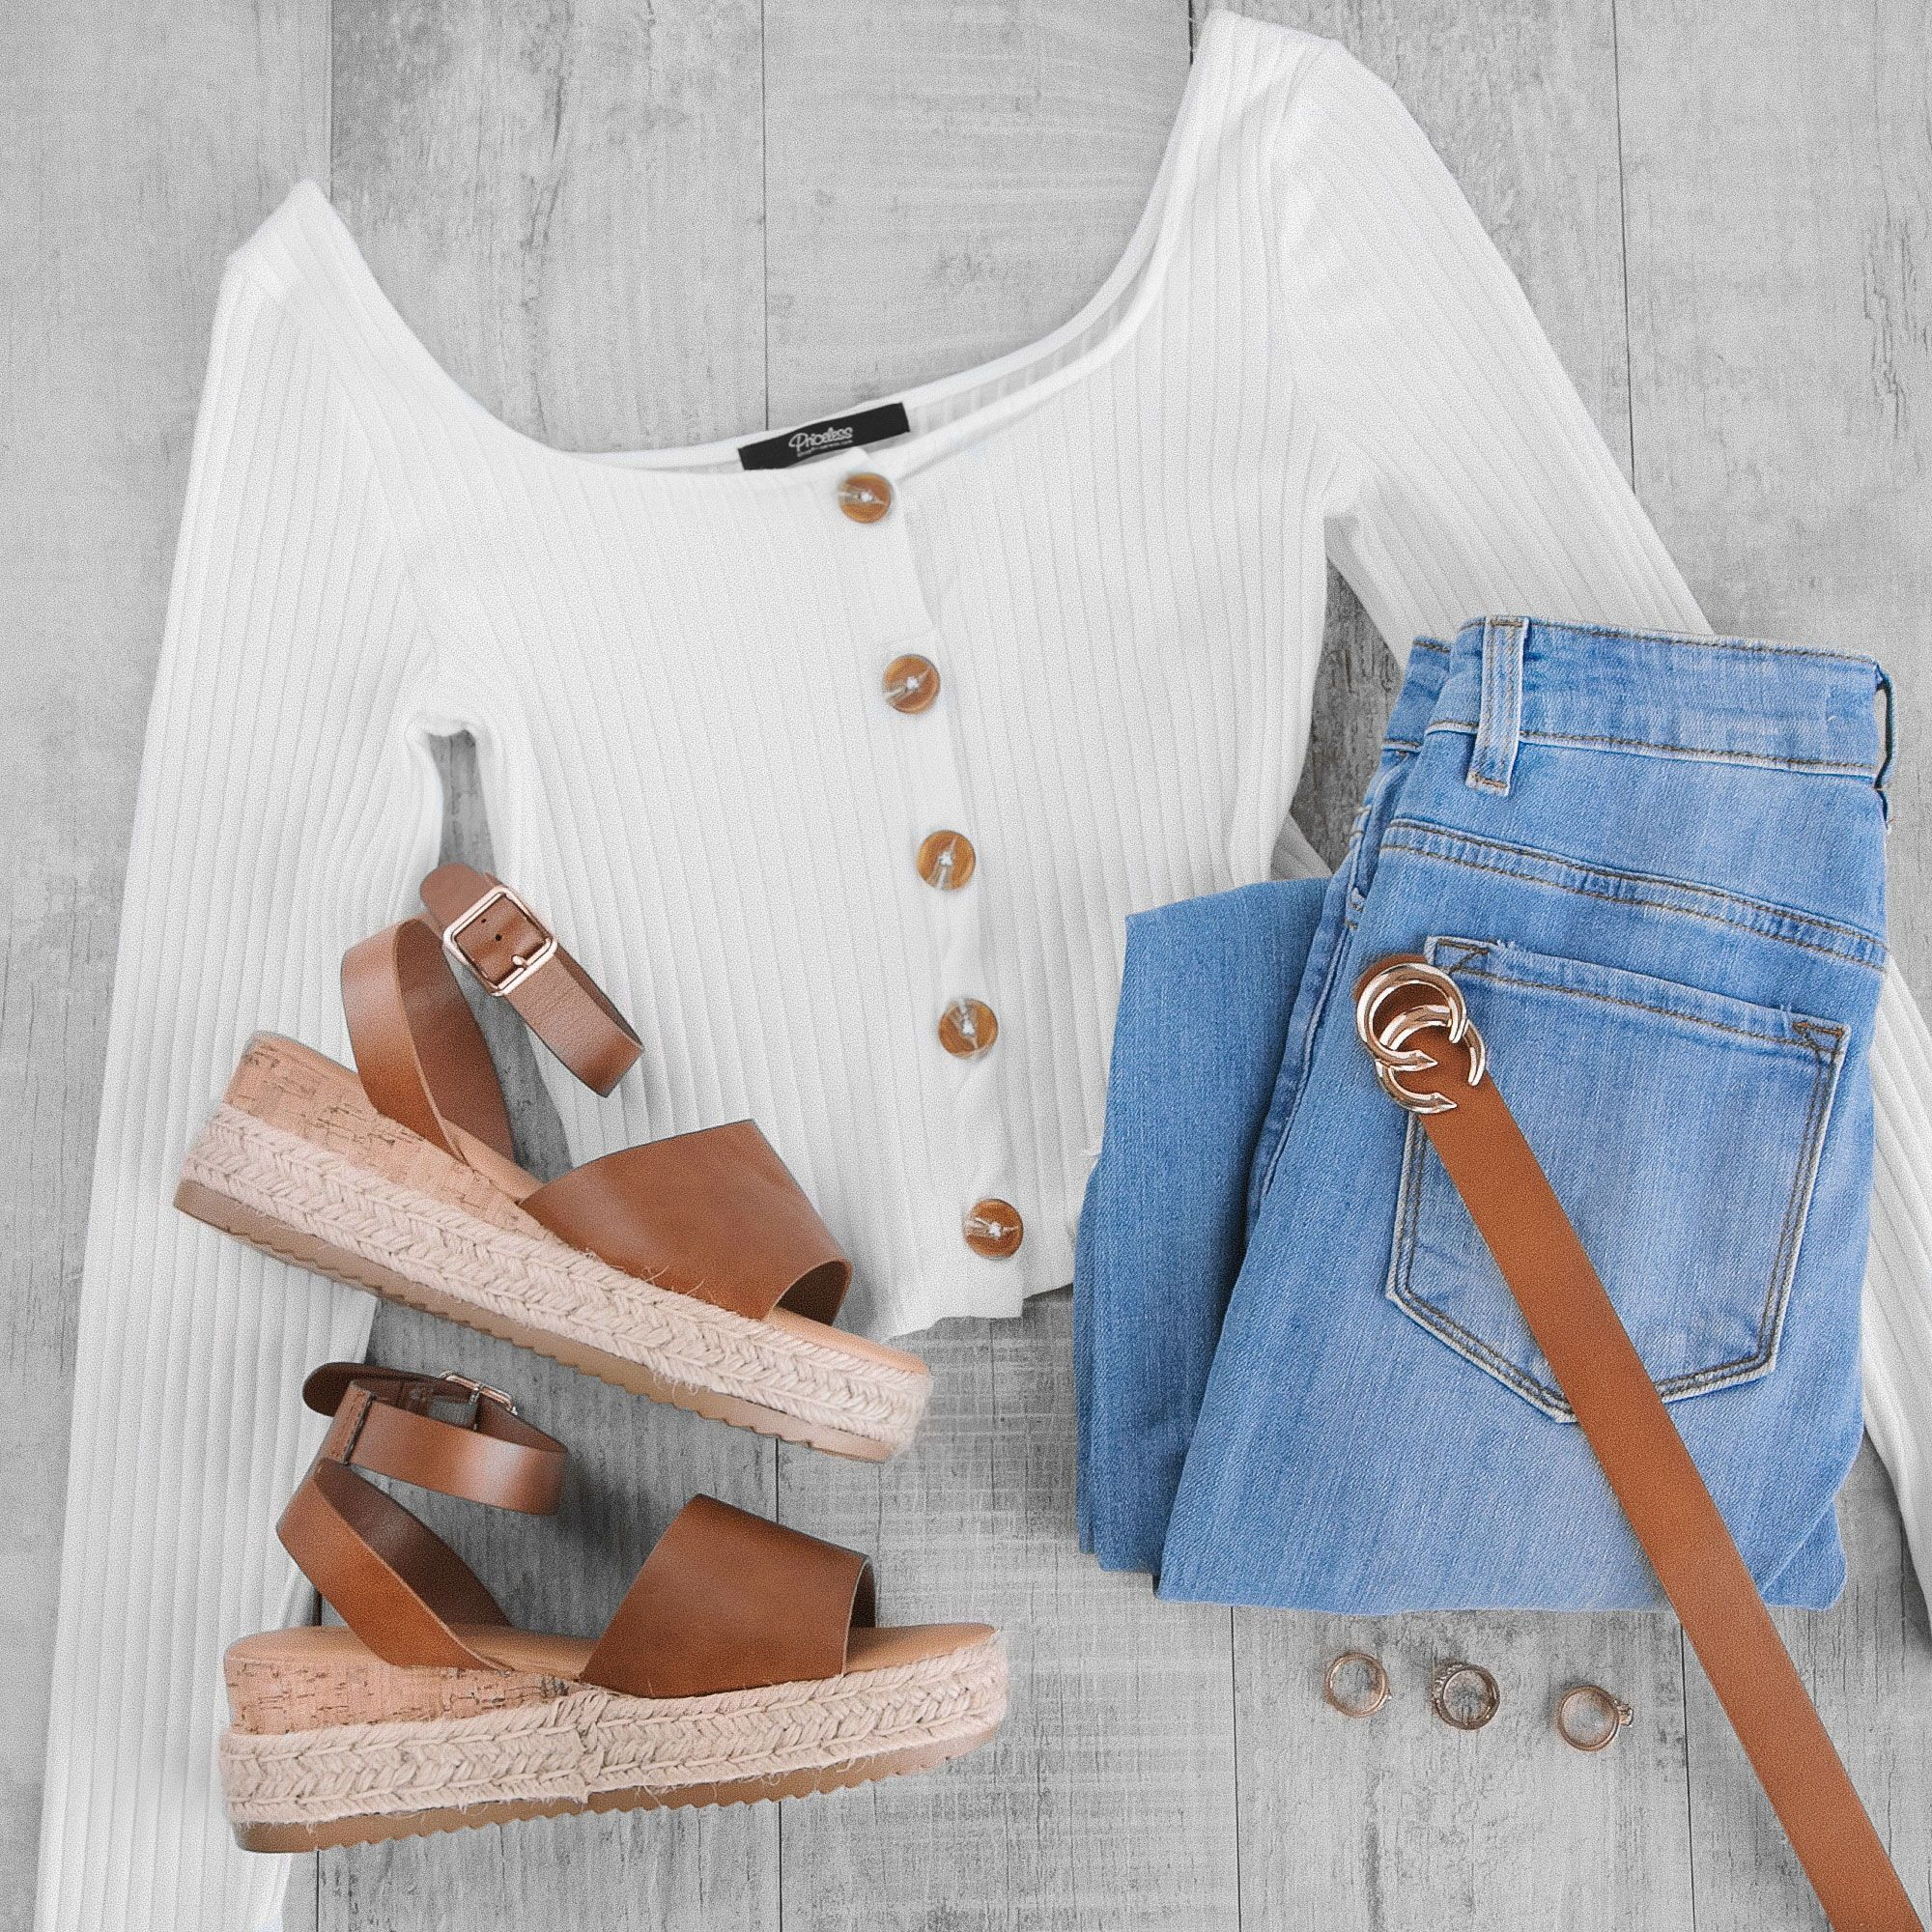 33353f89093b The Manda White Button Off The Shoulder #CropTop isn't just basic, but  she's sure to step up any #OOTD! #ShopPriceless #WomensFashion